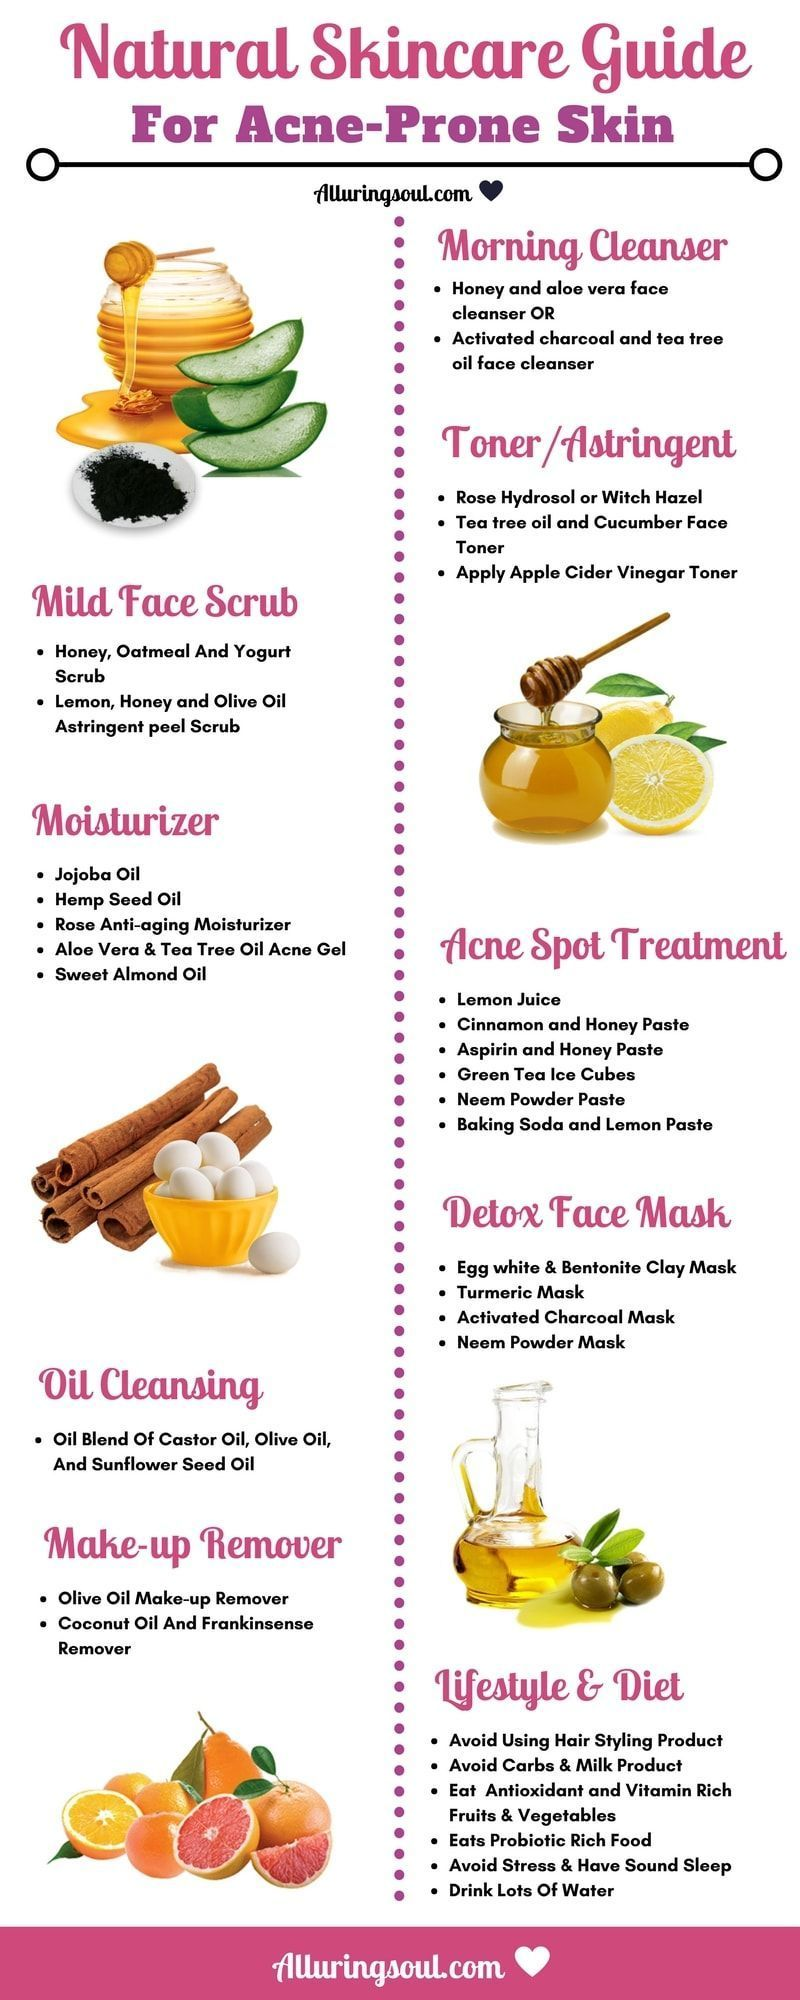 Quit Acne Using Natural Skin Care Guide For Acne Prone Skin And Give Your Skin Nutritional Food Through Natur Skin Care Guide Acne Prone Skin Natural Skin Care